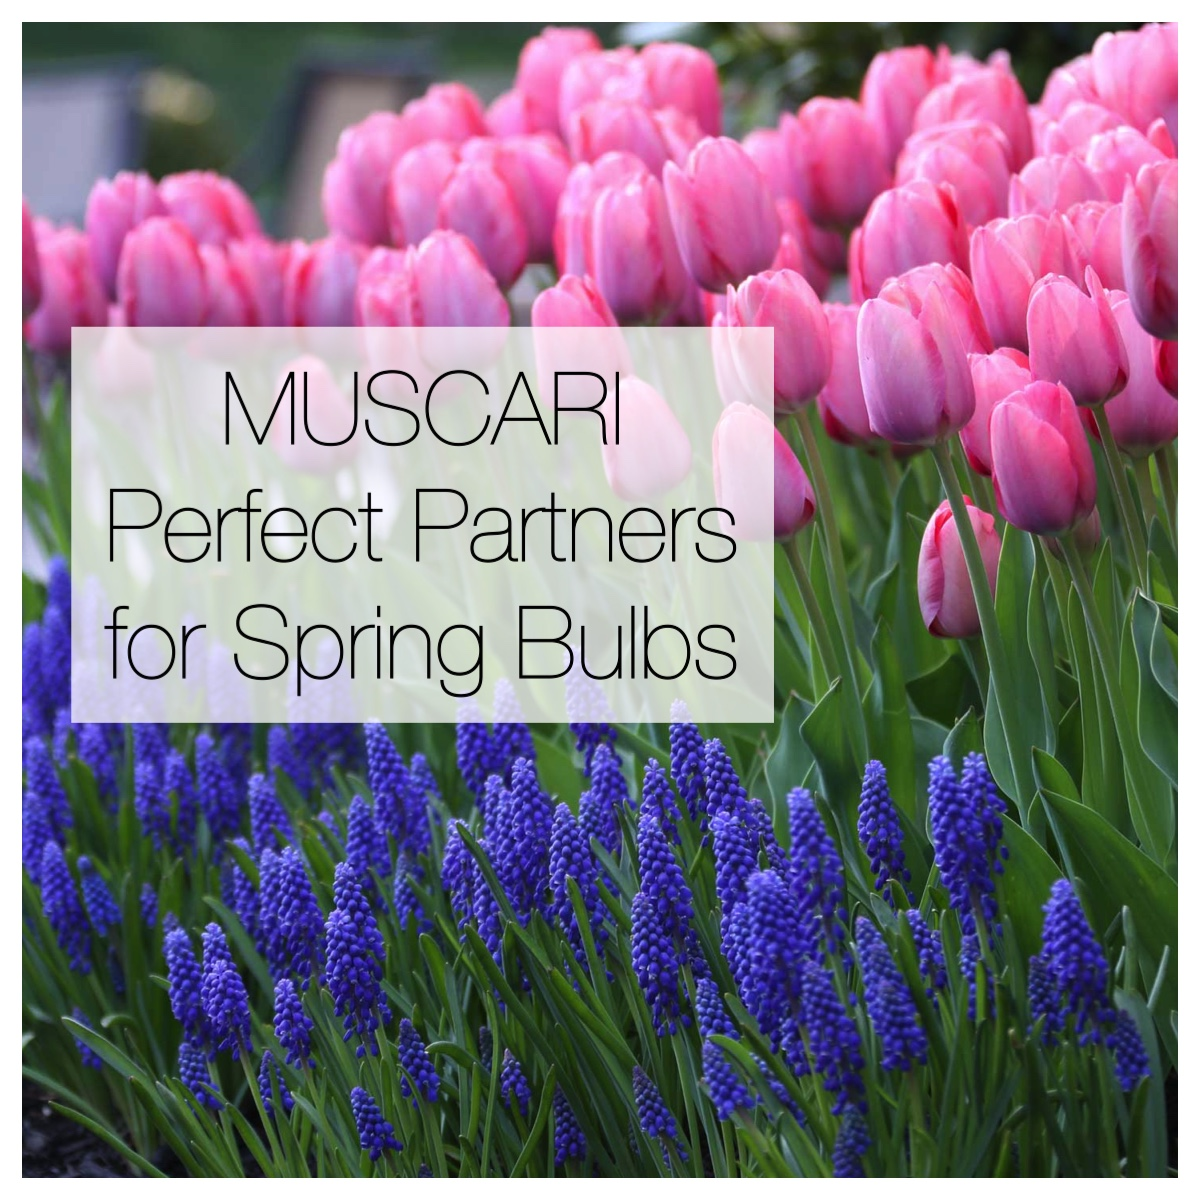 Muscari: Perfect Partners for Spring Bulbs